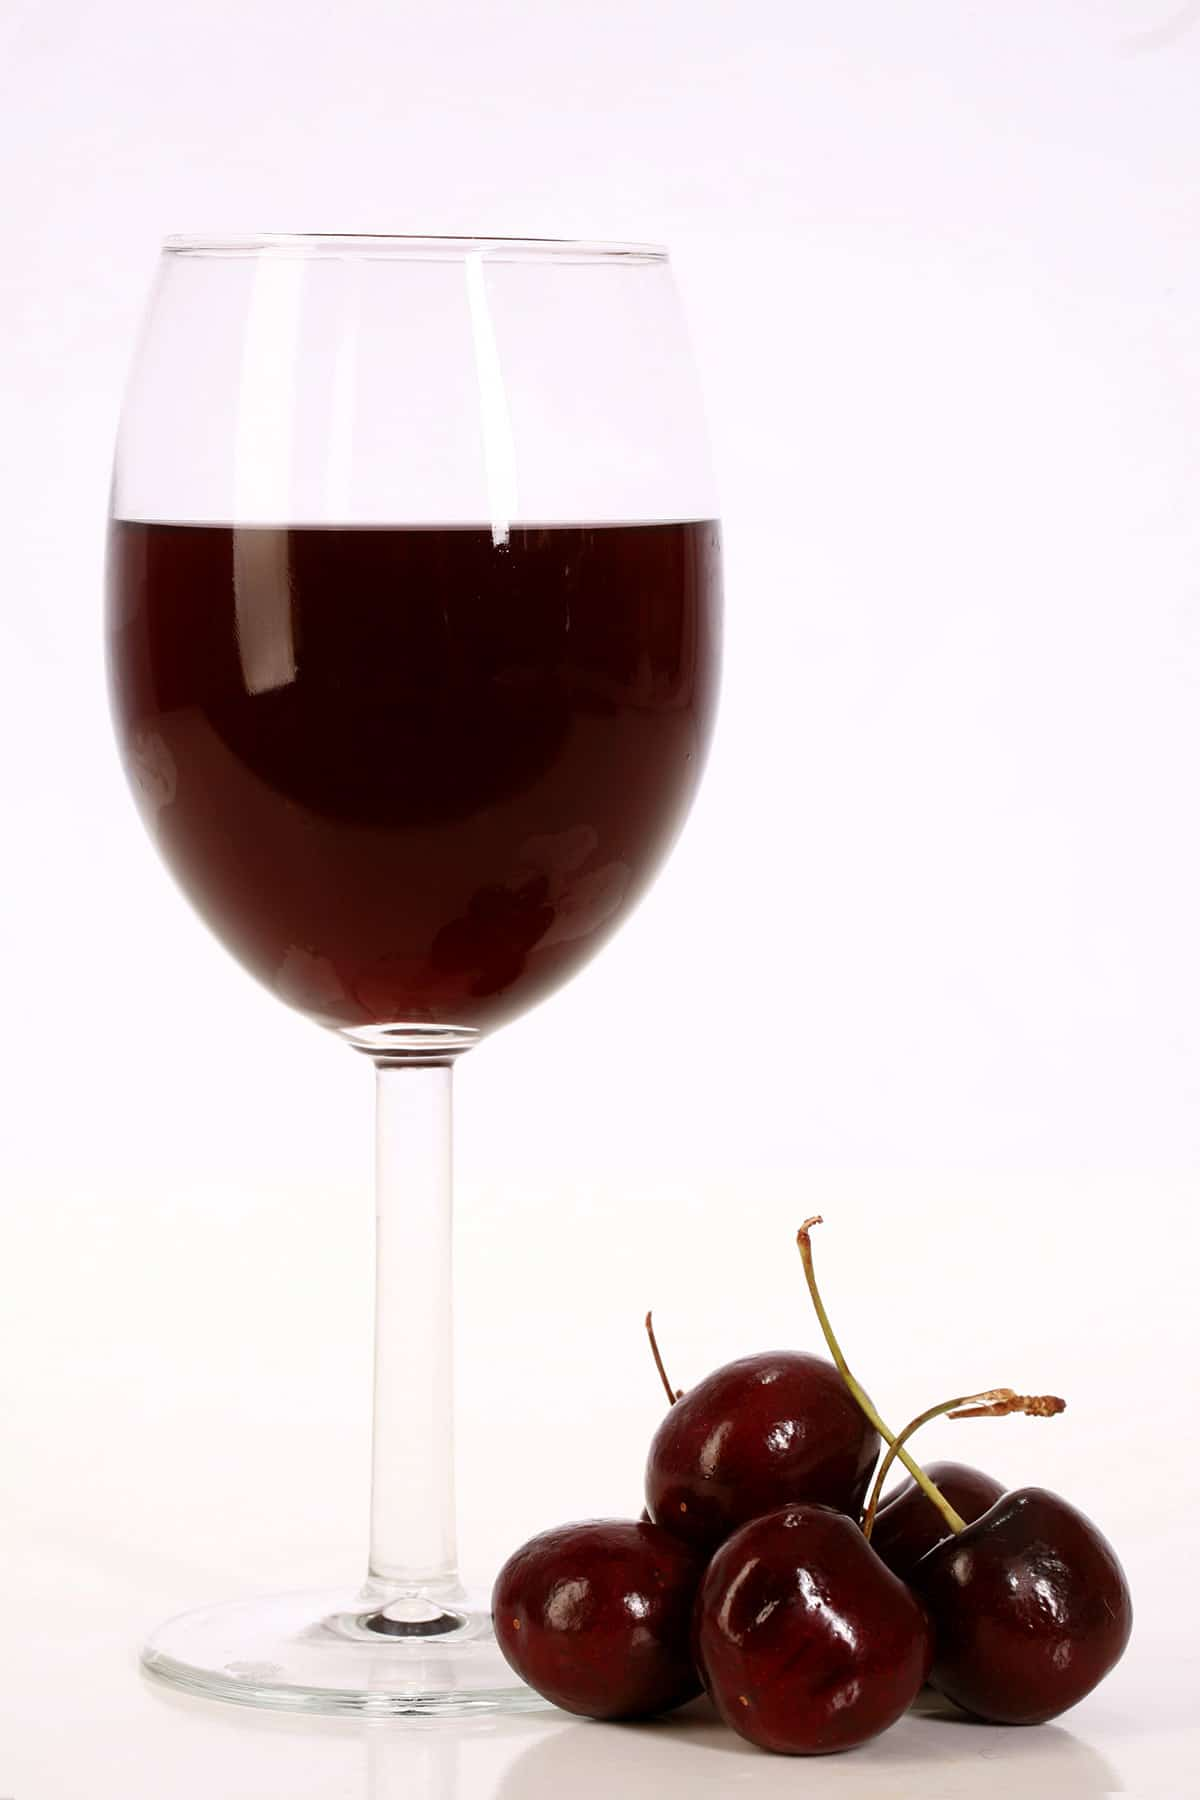 A glass of dark red cherry wine, with several cherries at the base of it.